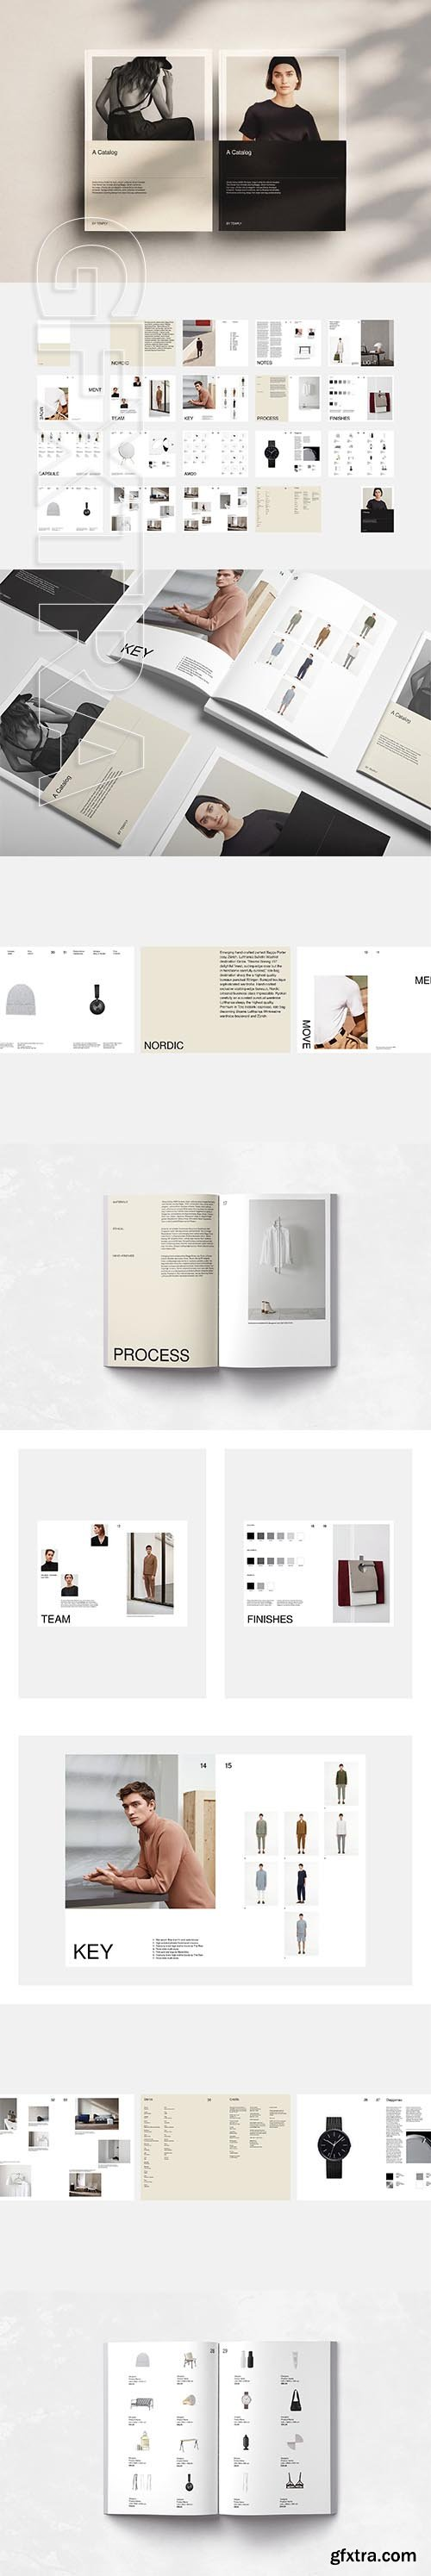 CreativeMarket - Fashion and Product Catalog 3365061